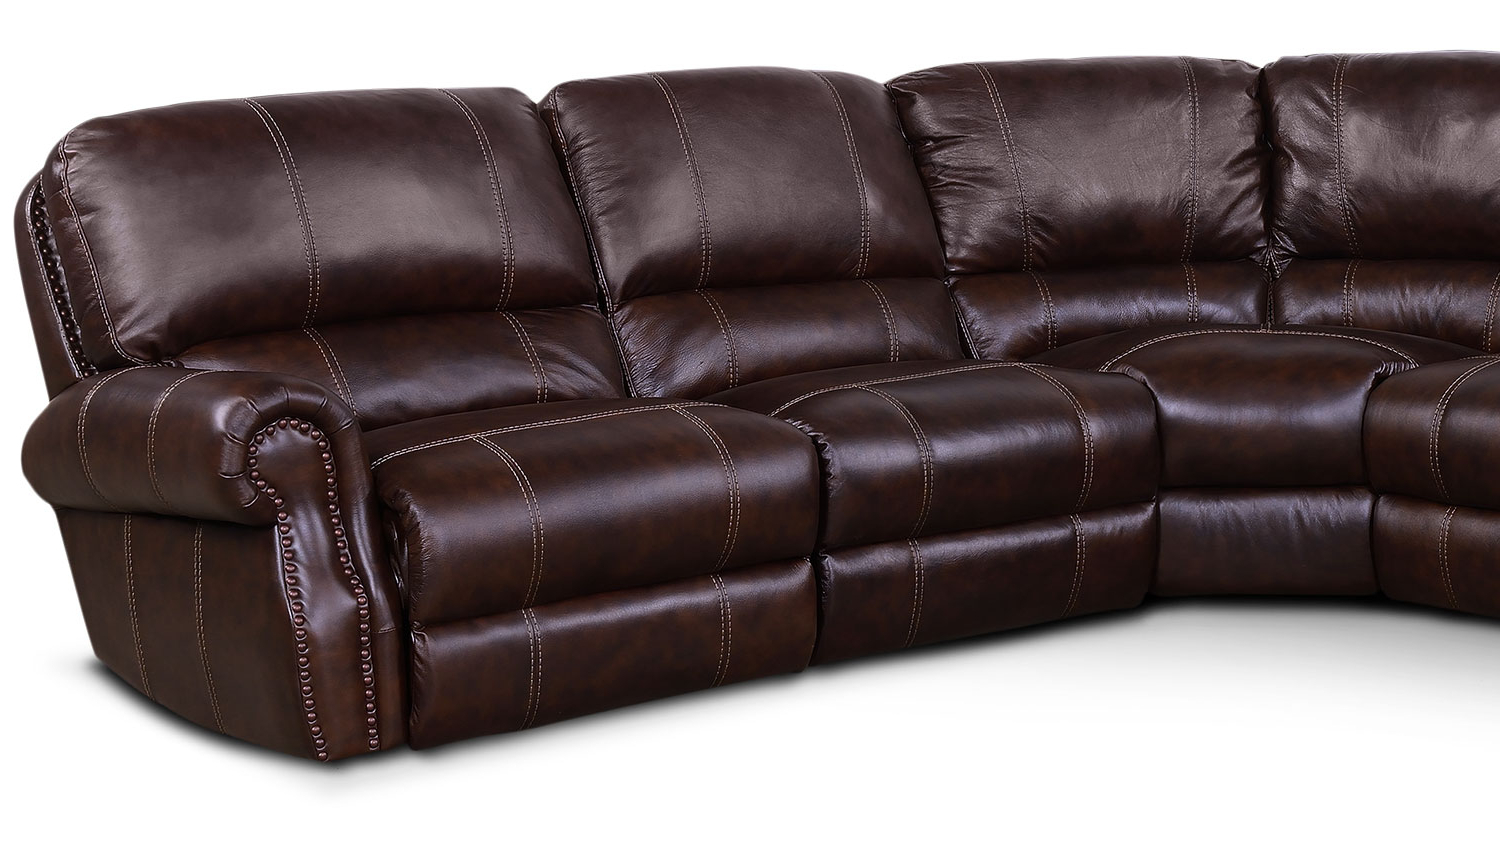 Favorite Dartmouth 6 Piece Power Reclining Sectional With 2 Reclining Seats In Norfolk Chocolate 6 Piece Sectionals With Laf Chaise (Gallery 11 of 20)